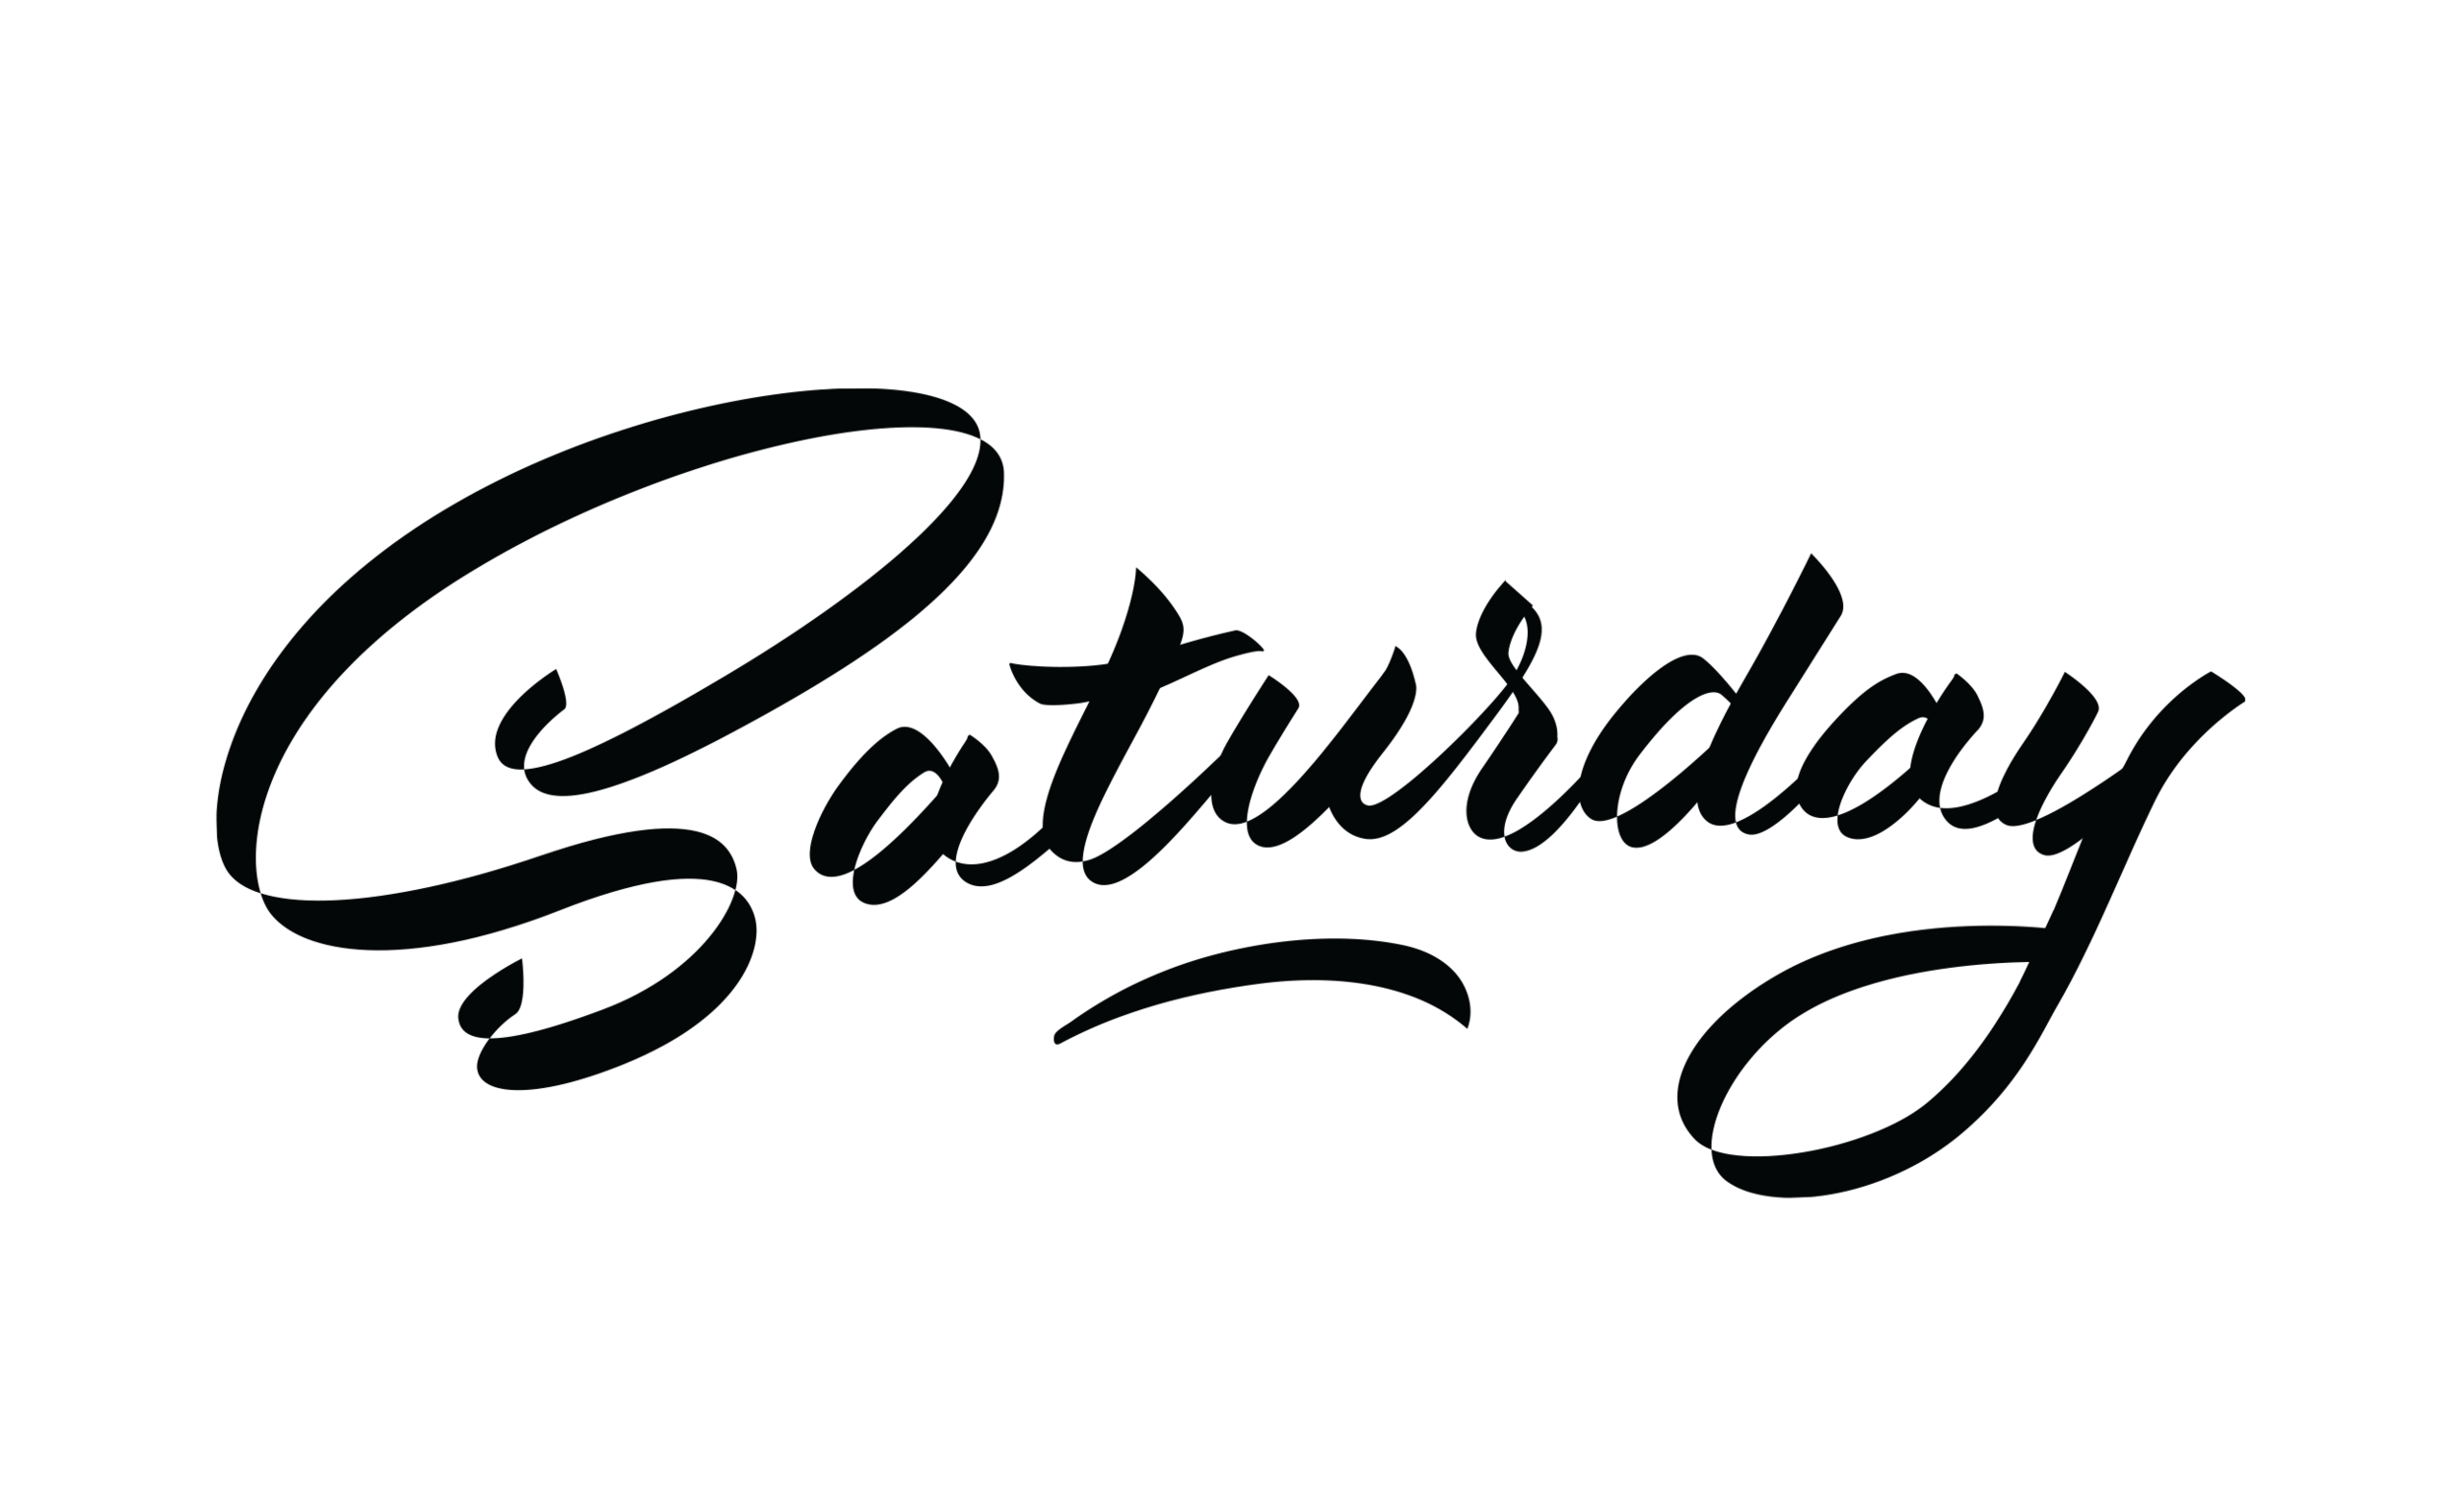 saturday_lettering.png